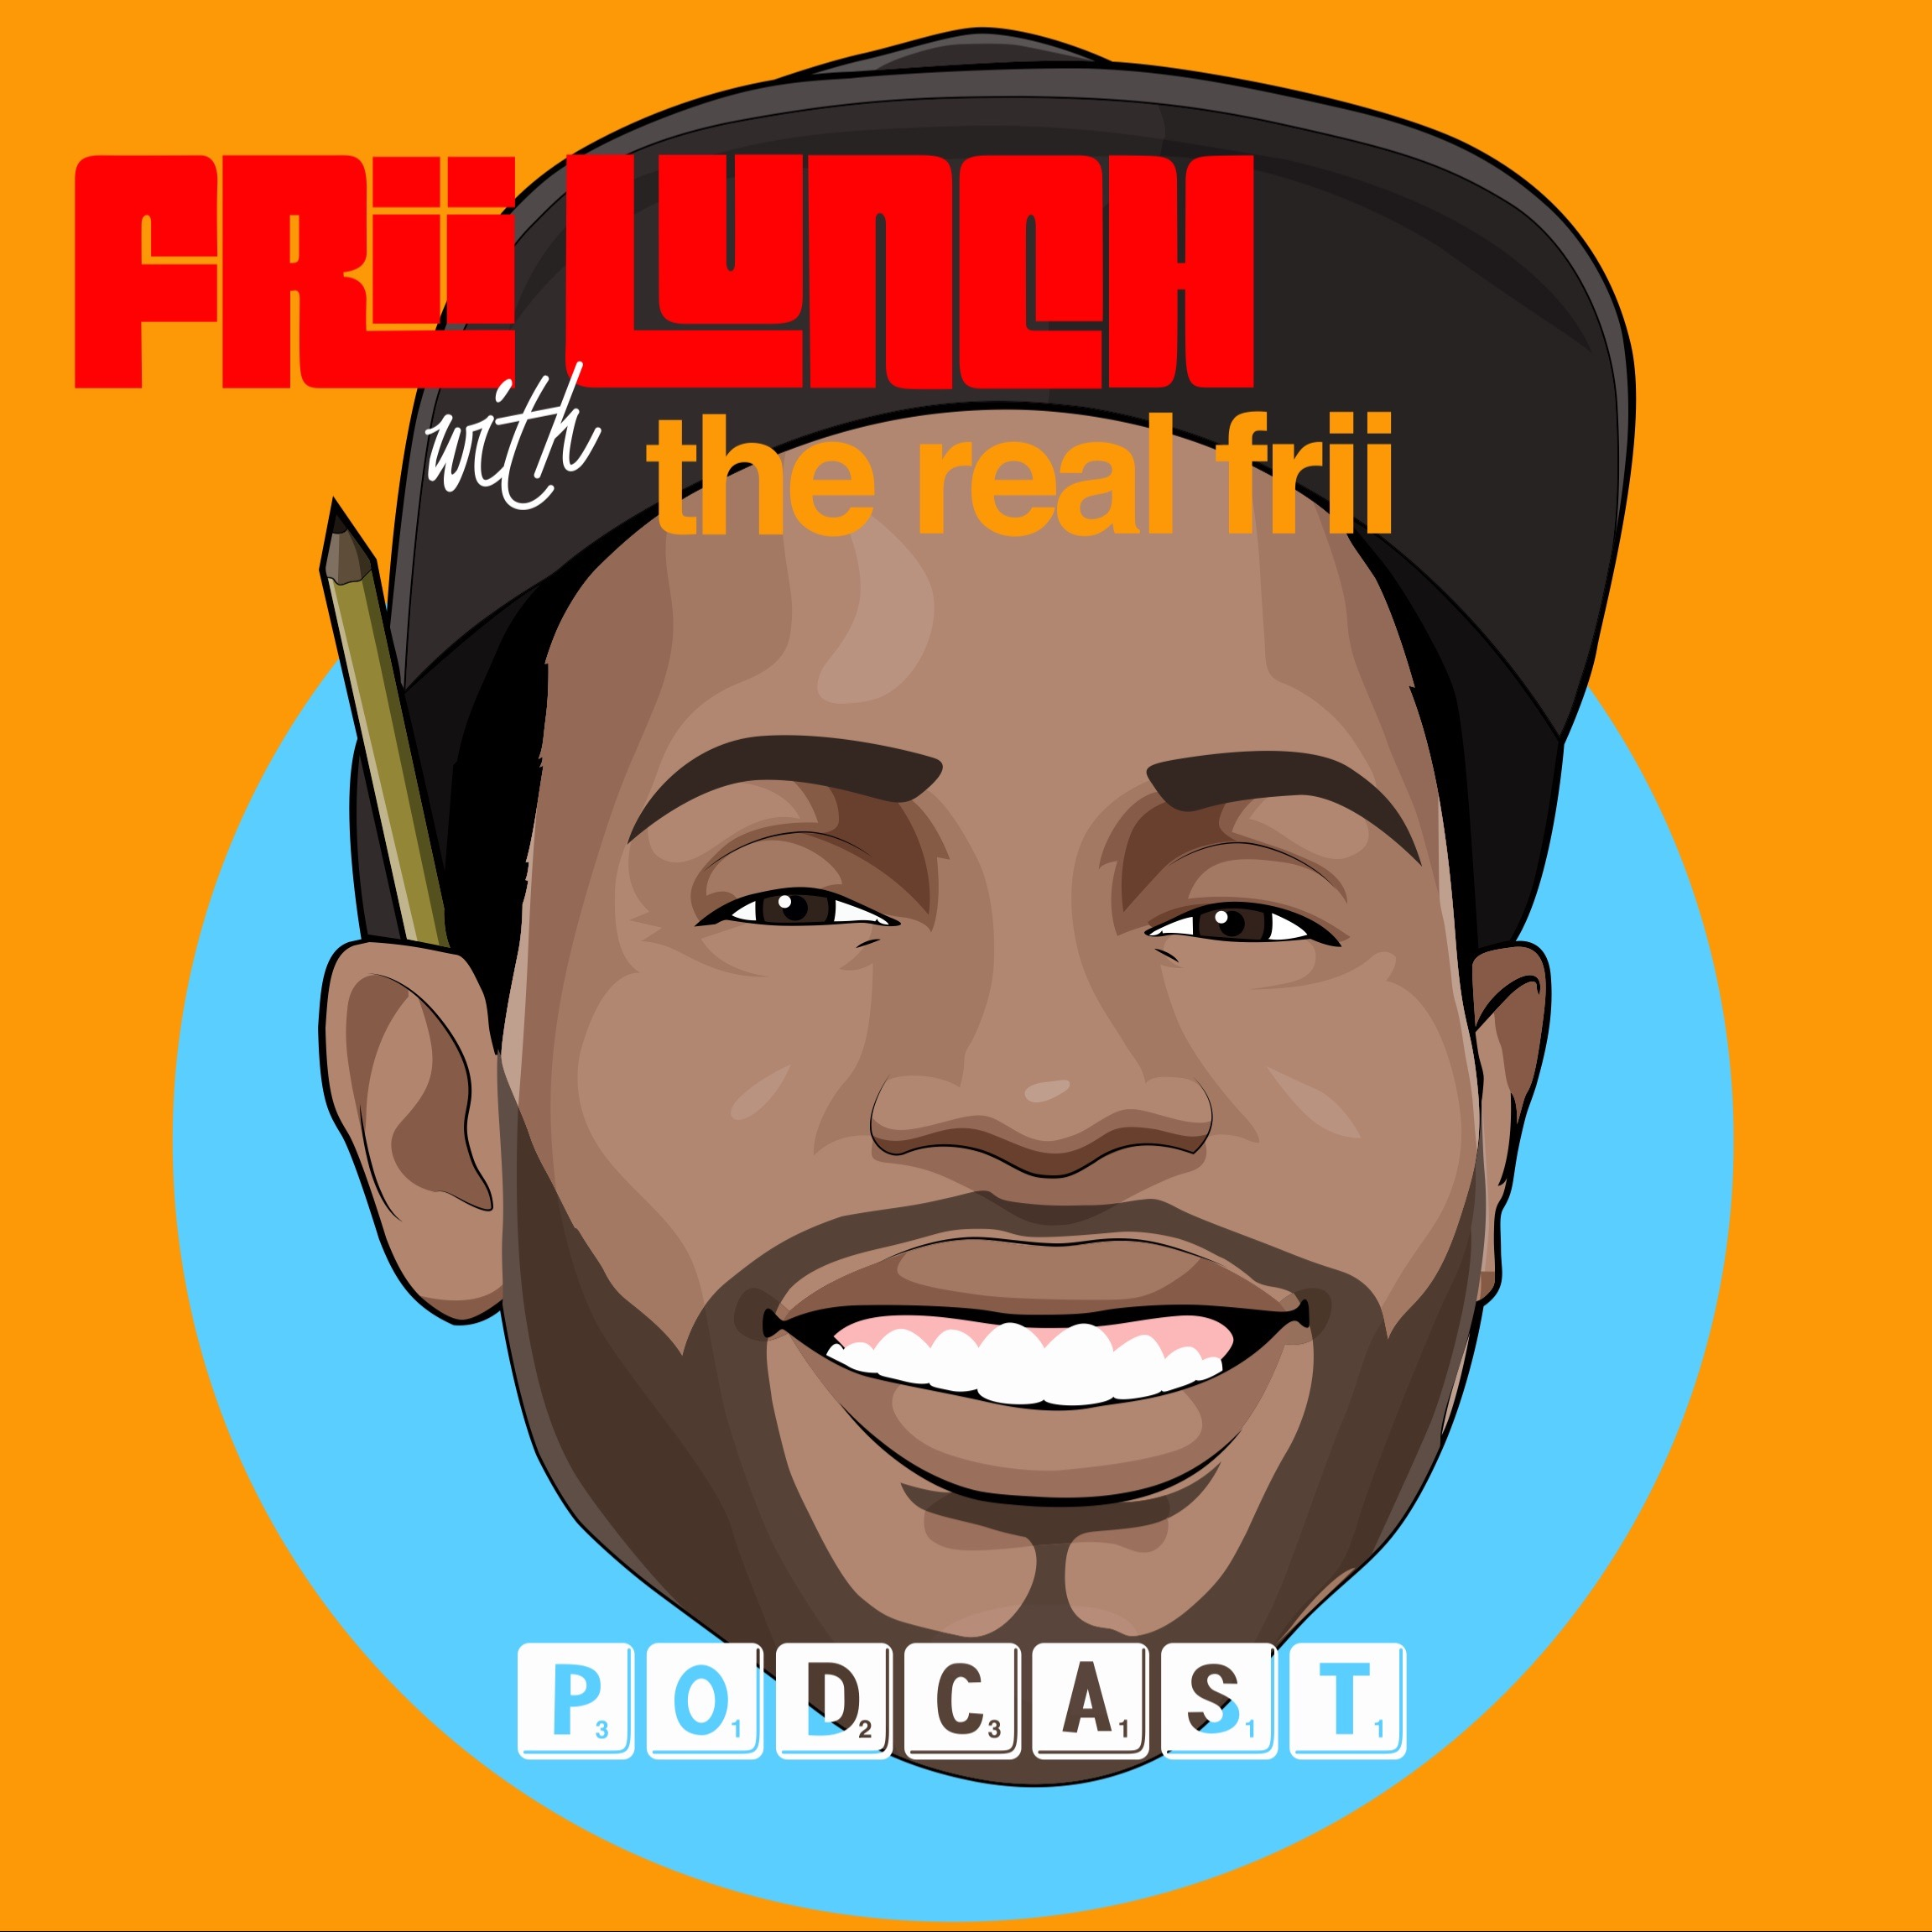 Frii Lunch Podcast